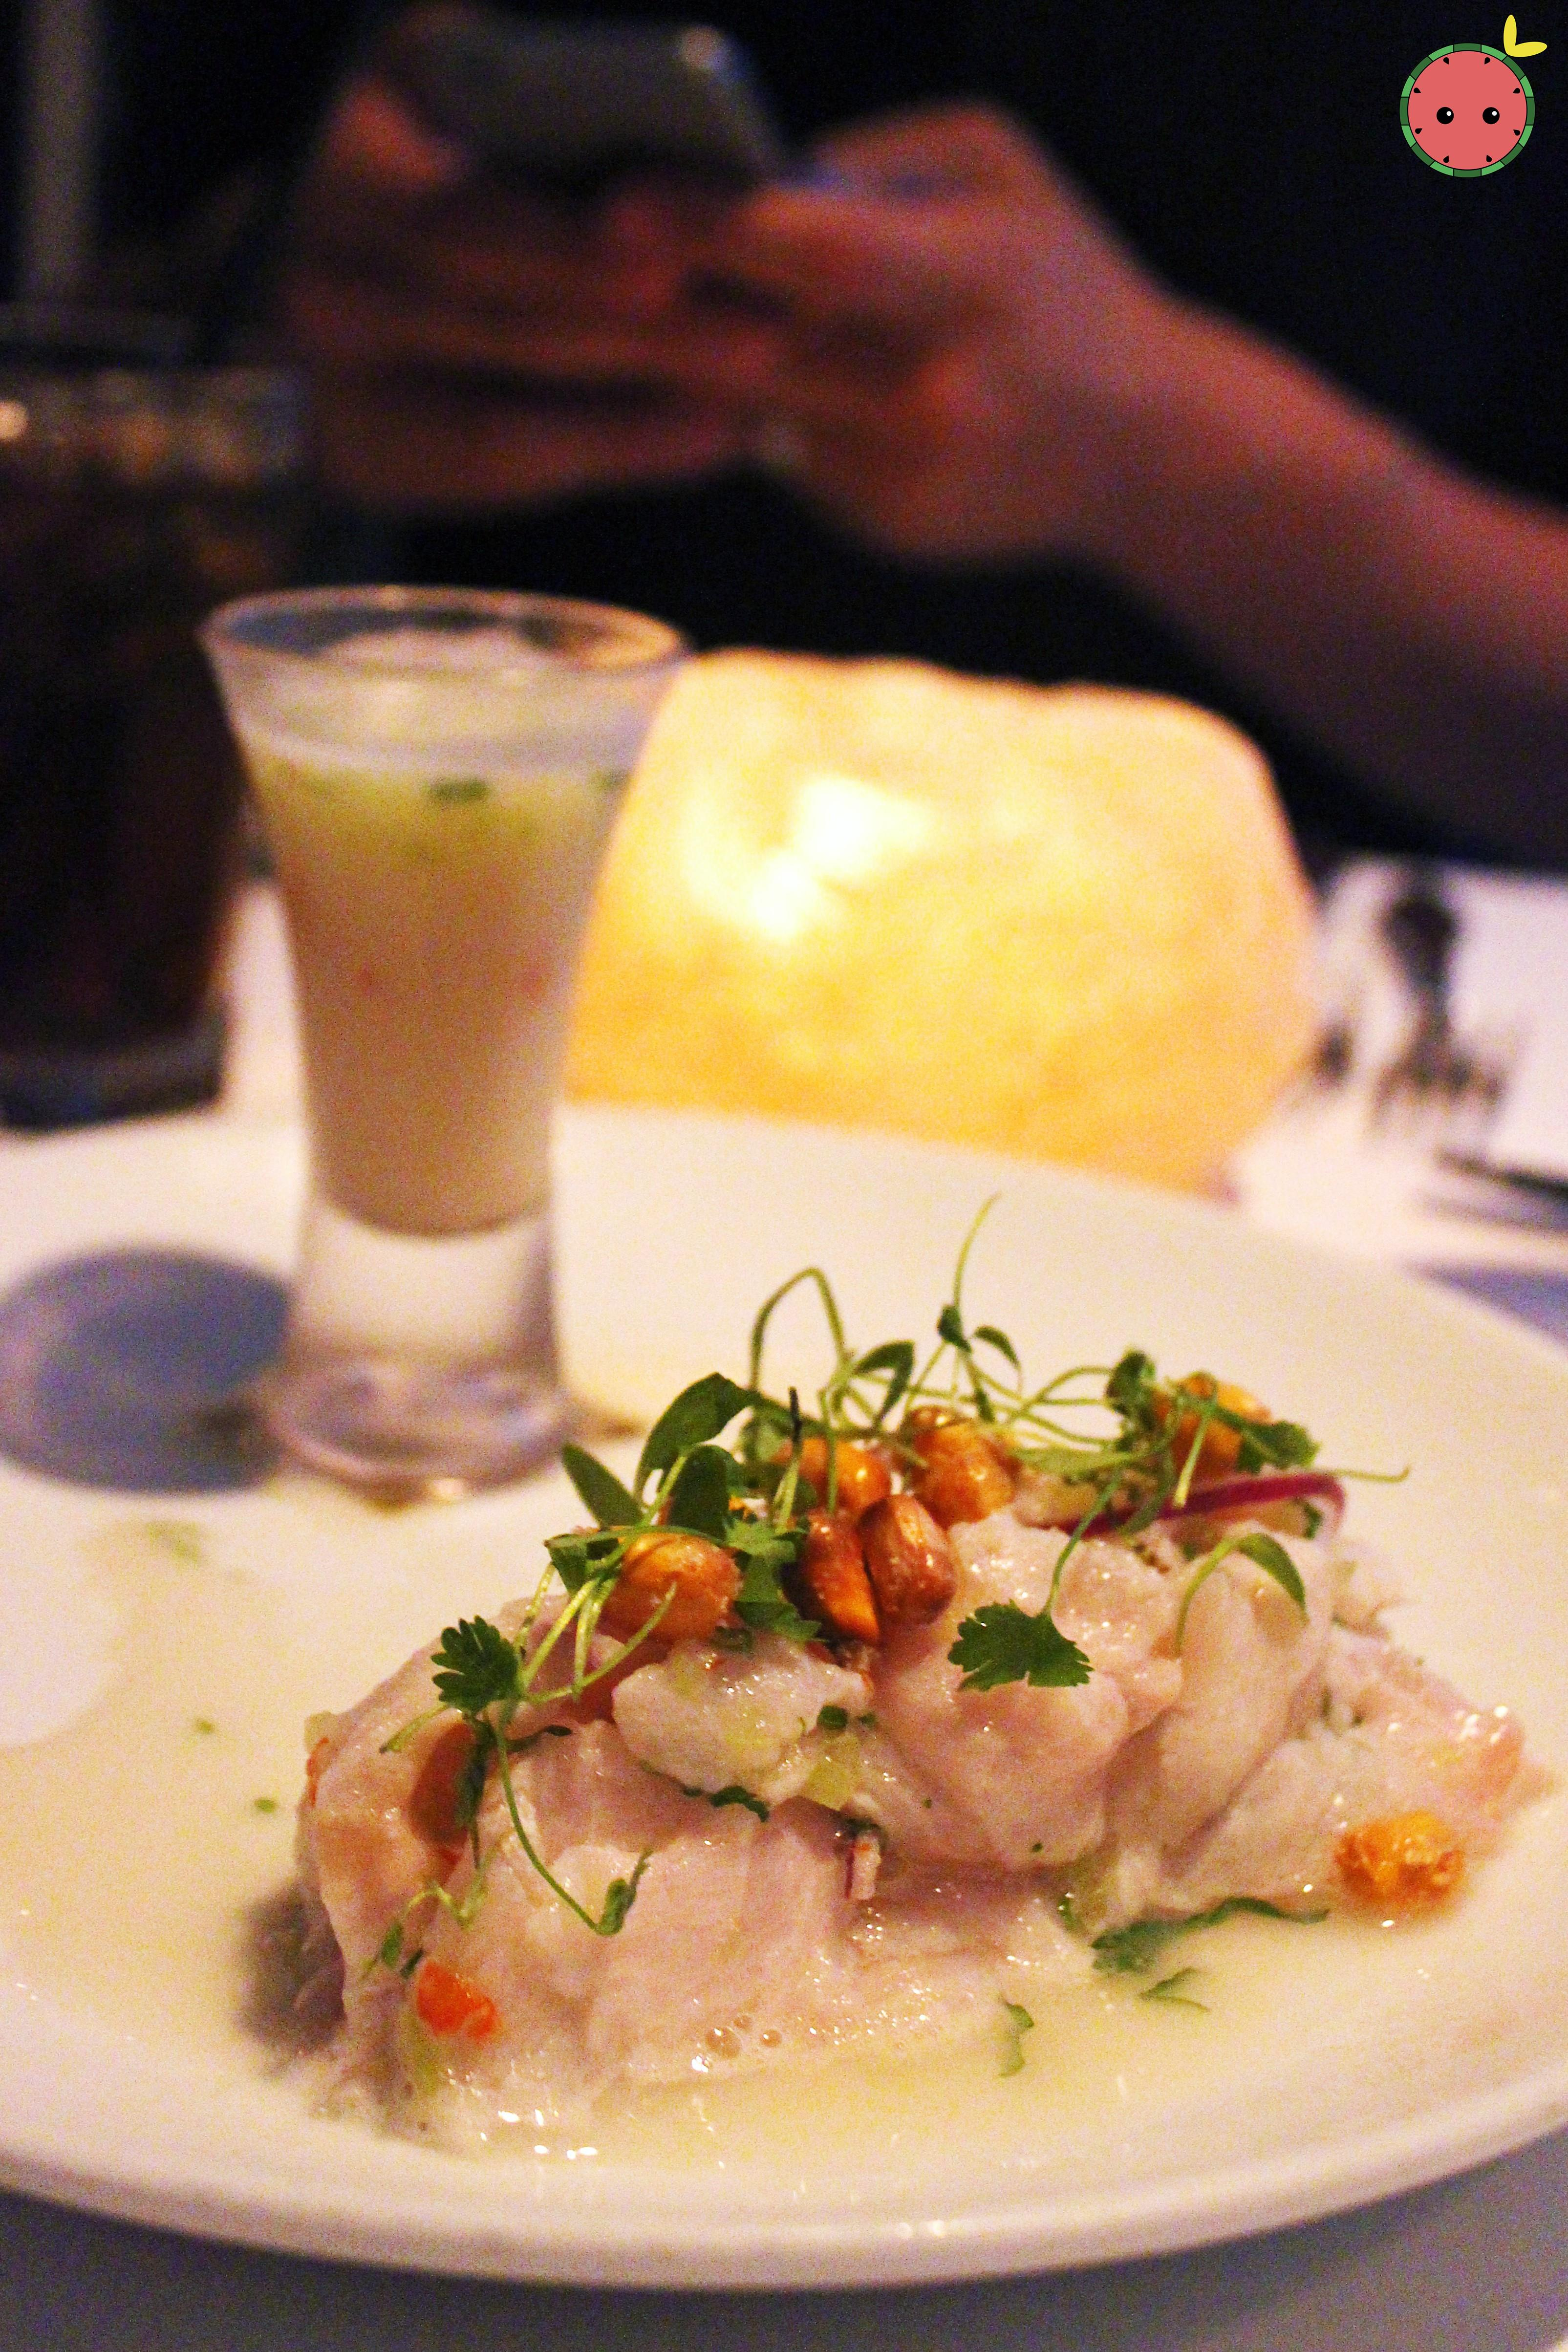 Corvina Ceviche - Lime juice, cilantro, red onion, lime peppers, Peruvian crispy corn with a side of